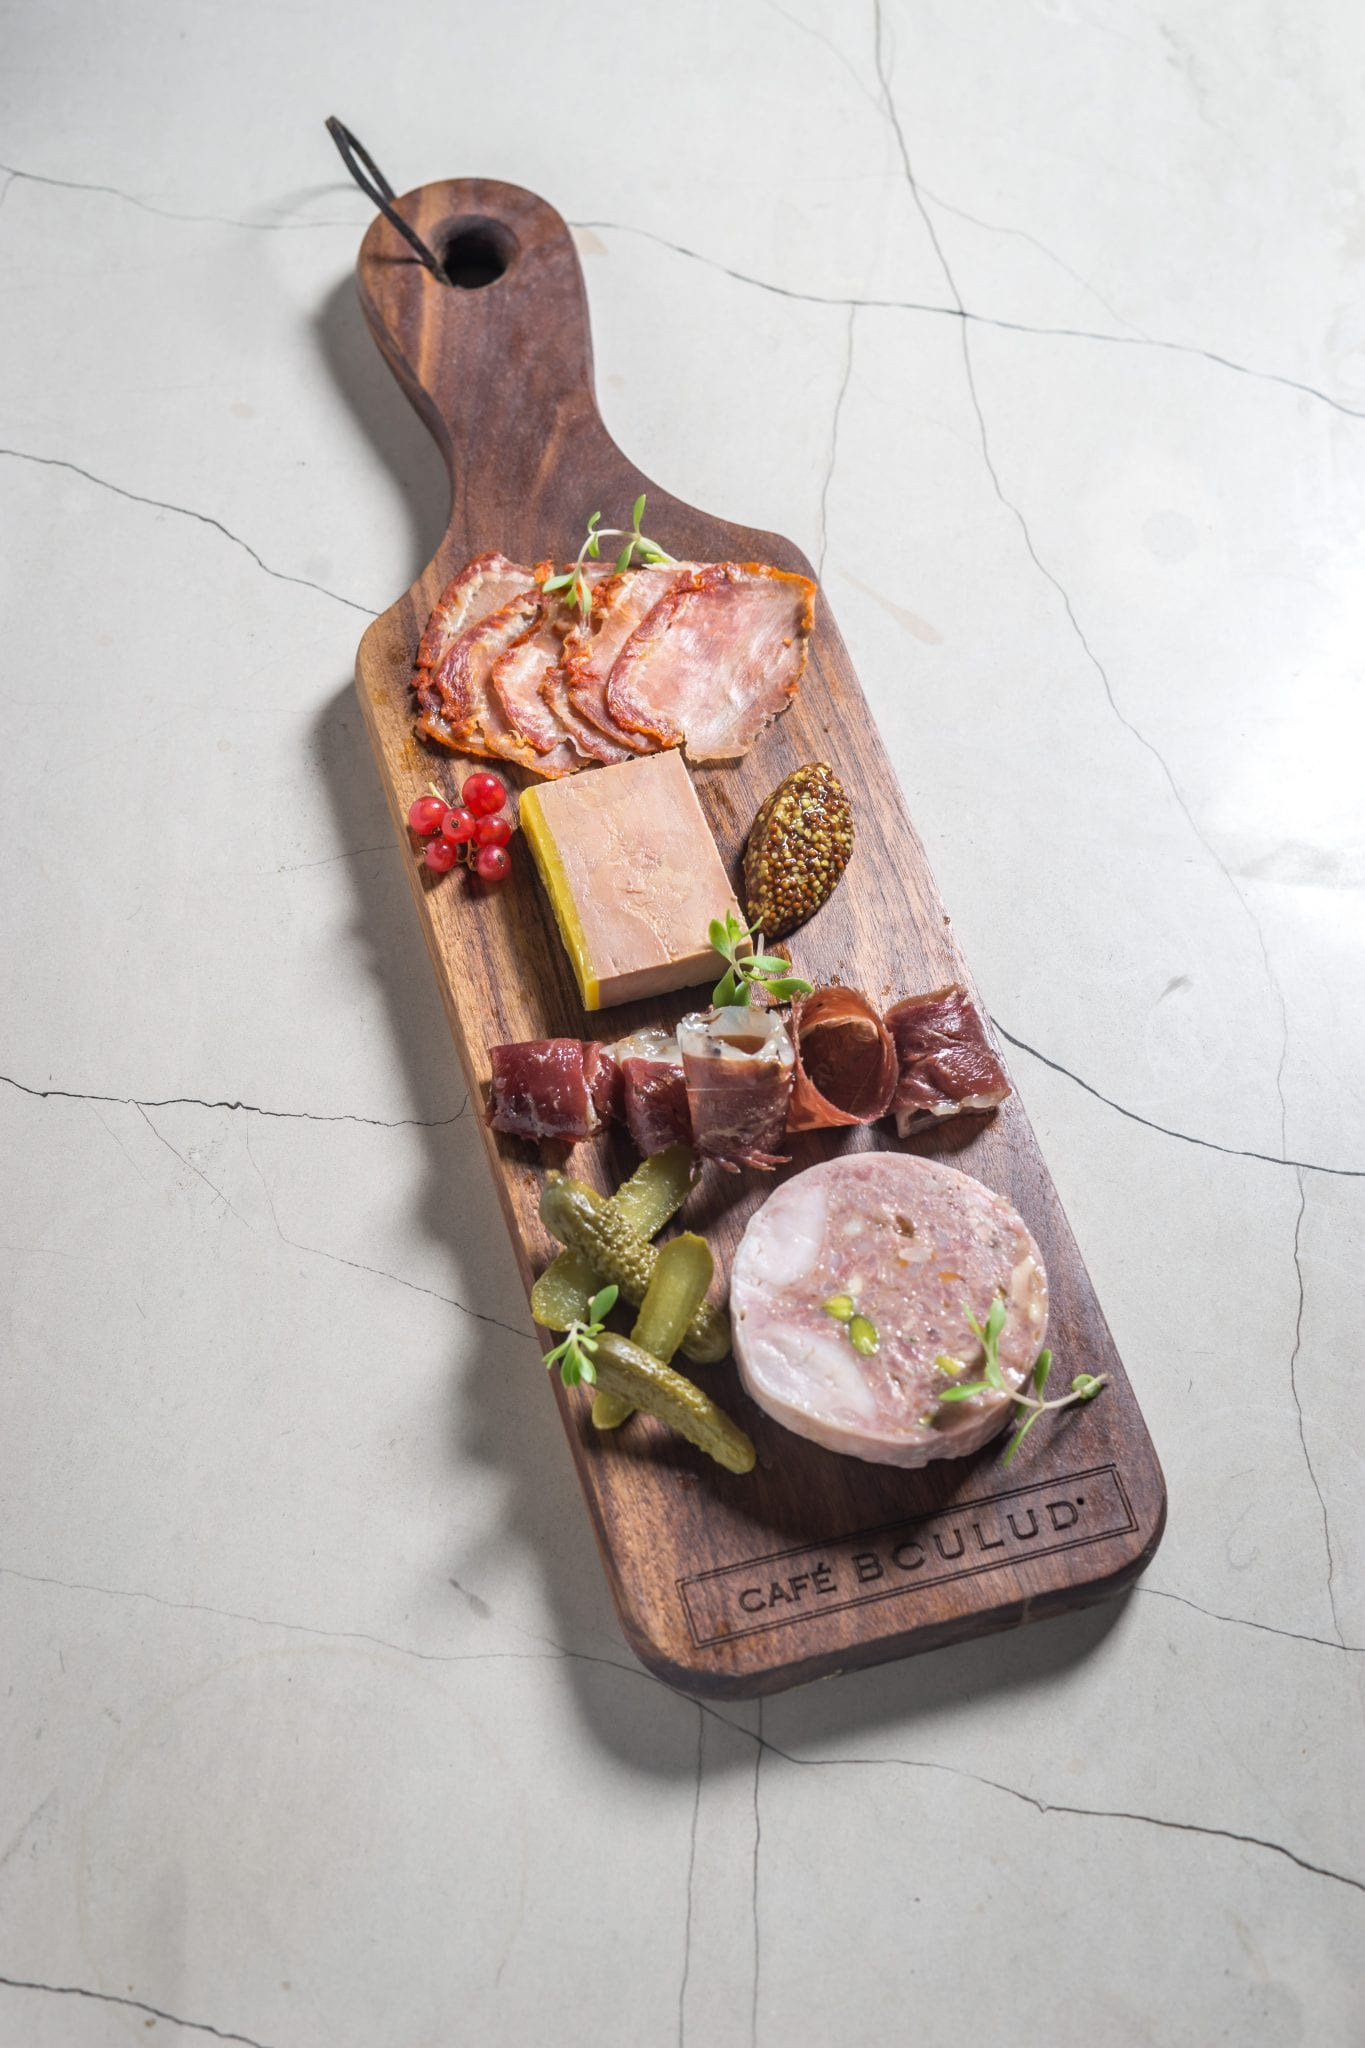 Close-up of a Charcuterie bread board, served inside Cafe Boulud. Photography by Paul Wagtouicz.